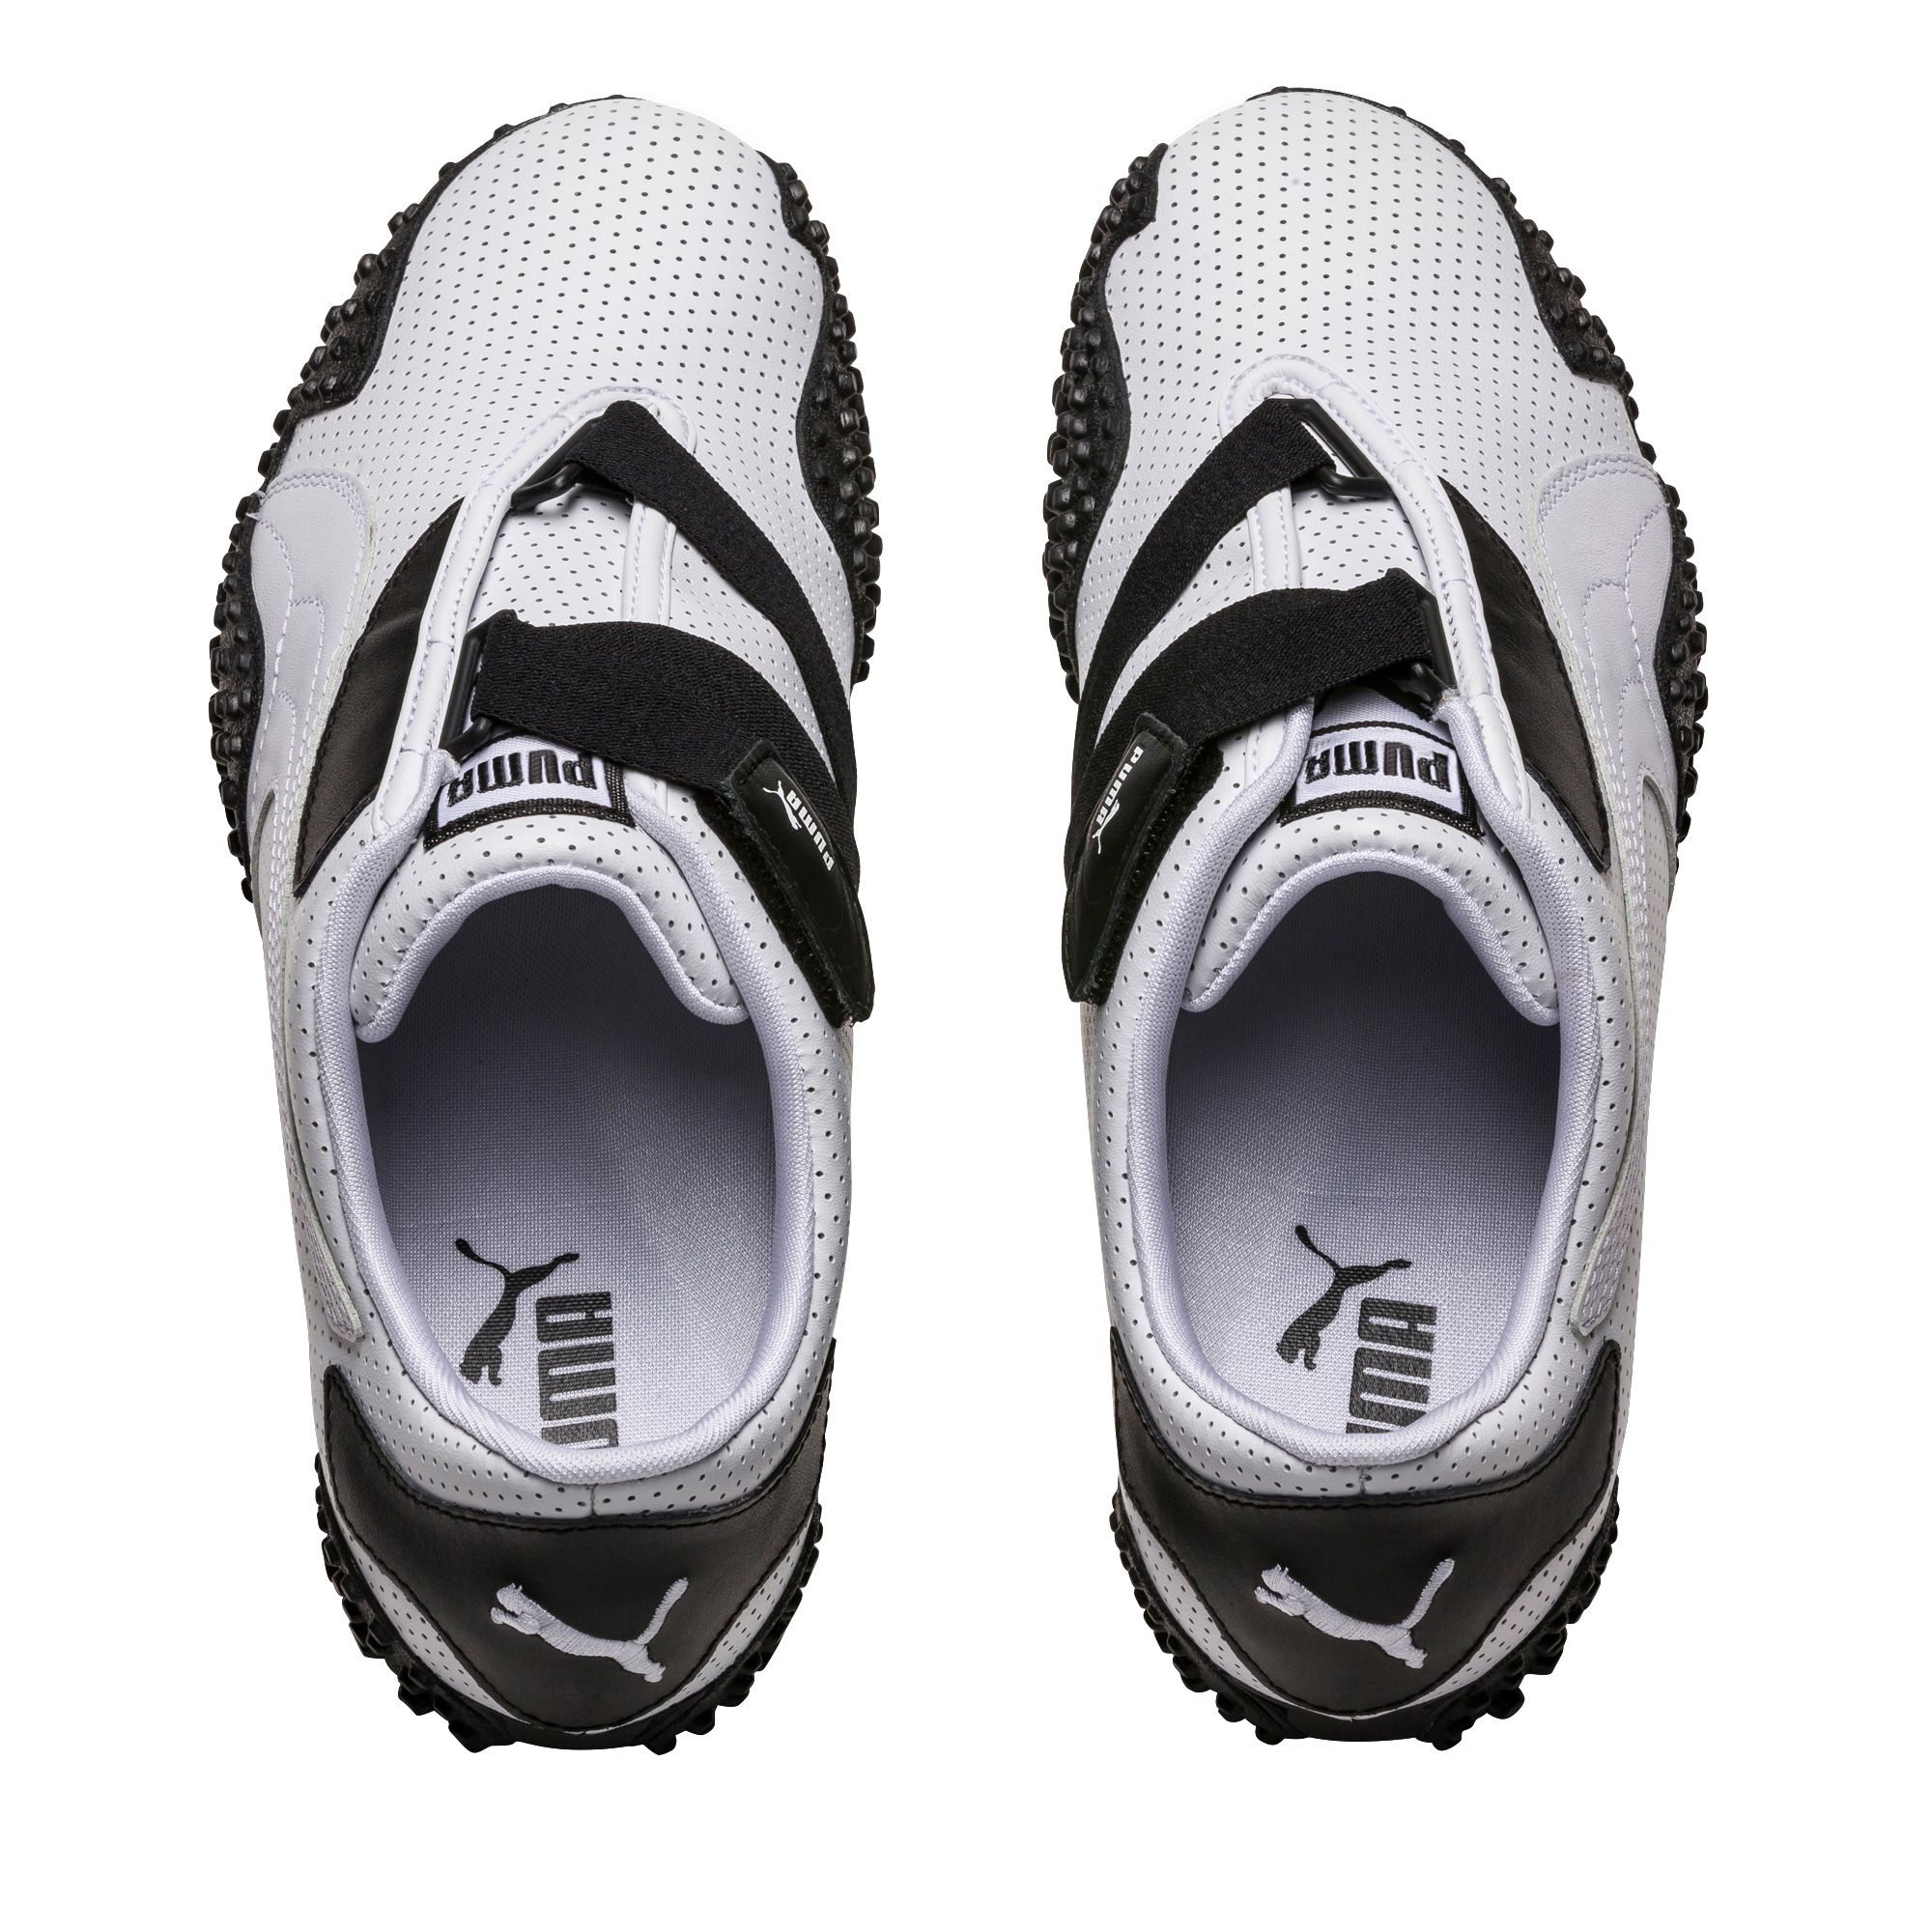 ec7db1f62a7c4f PUMA - Puma Men s Mostro Perforated White   Black Ankle-High Running Shoe -  11.5M - Walmart.com